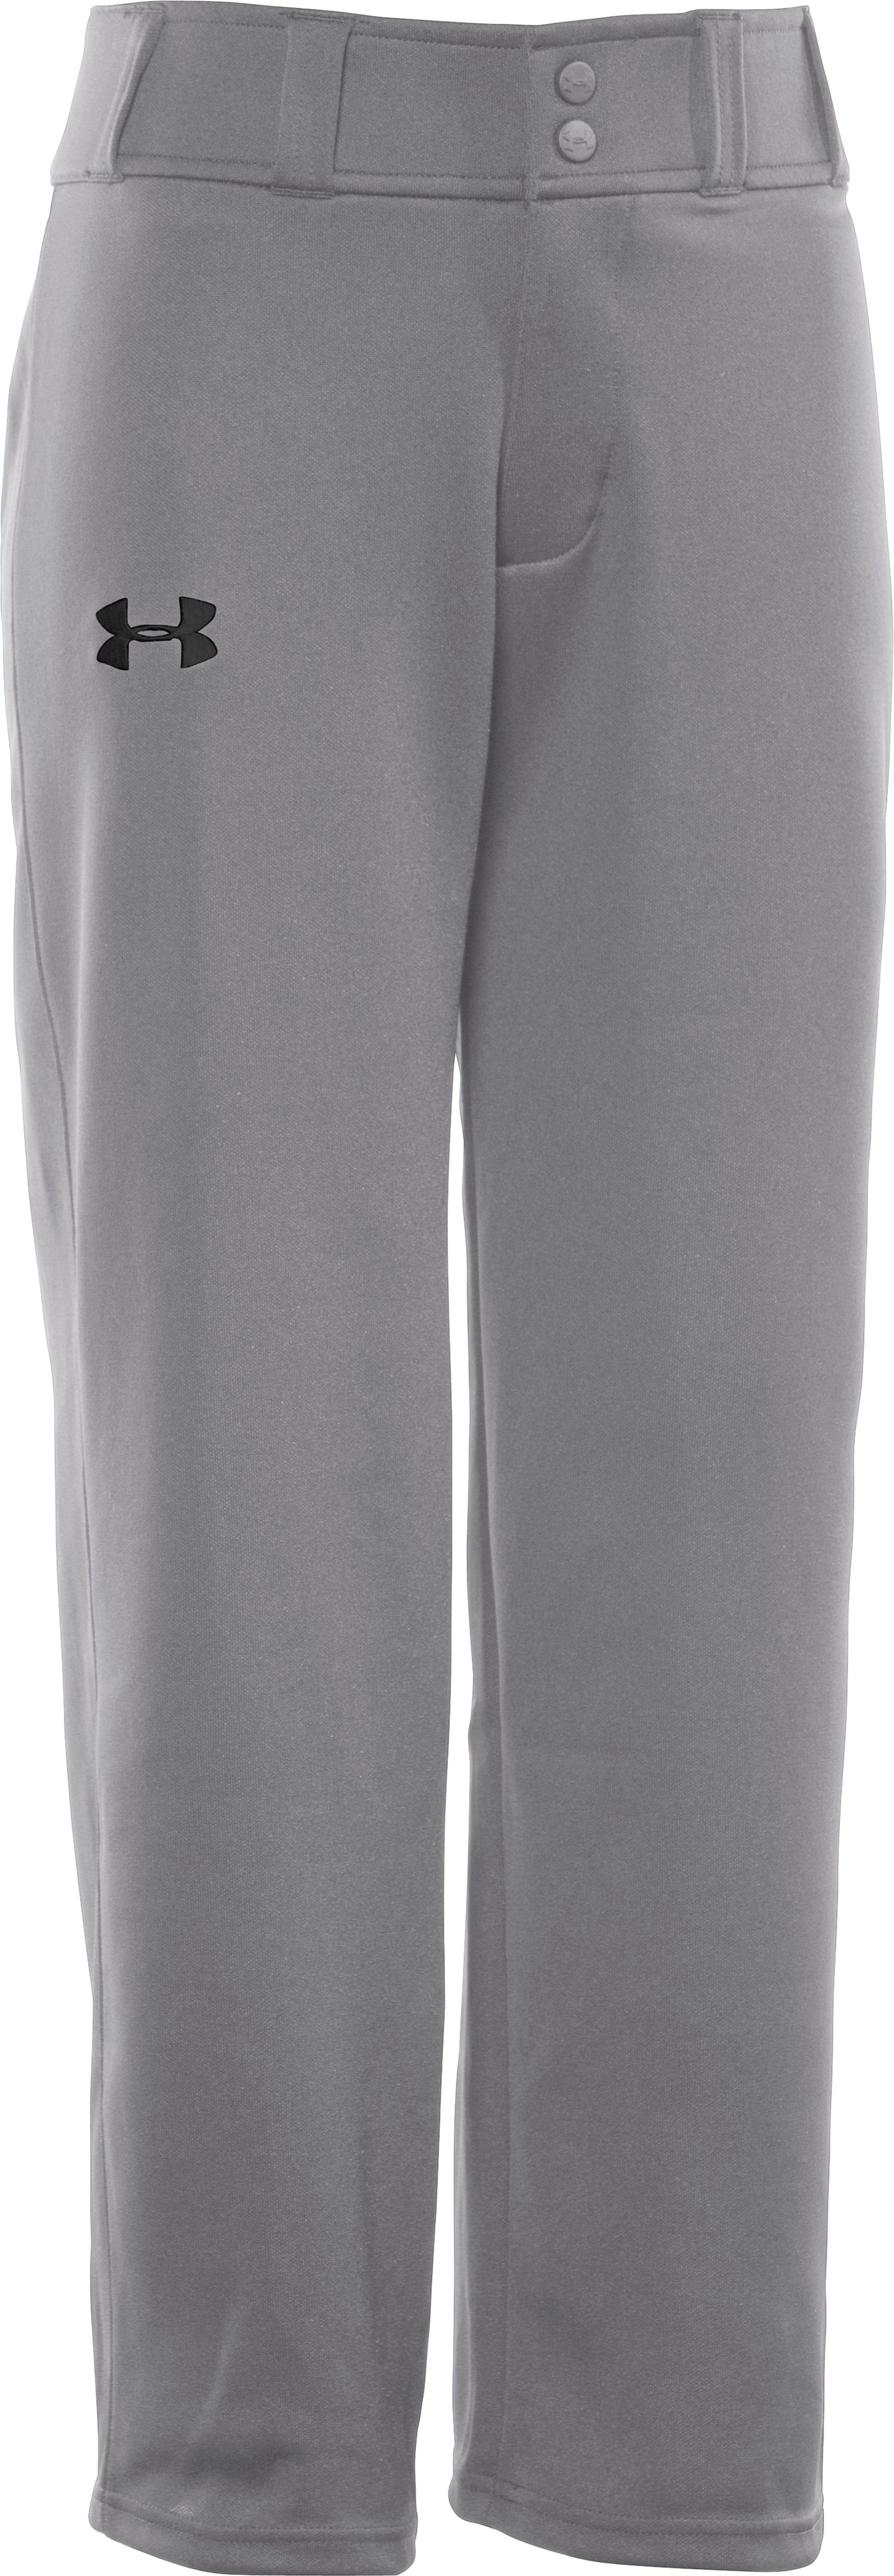 Boys' UA Clean Up Baseball Pants, Baseball Gray, zoomed image